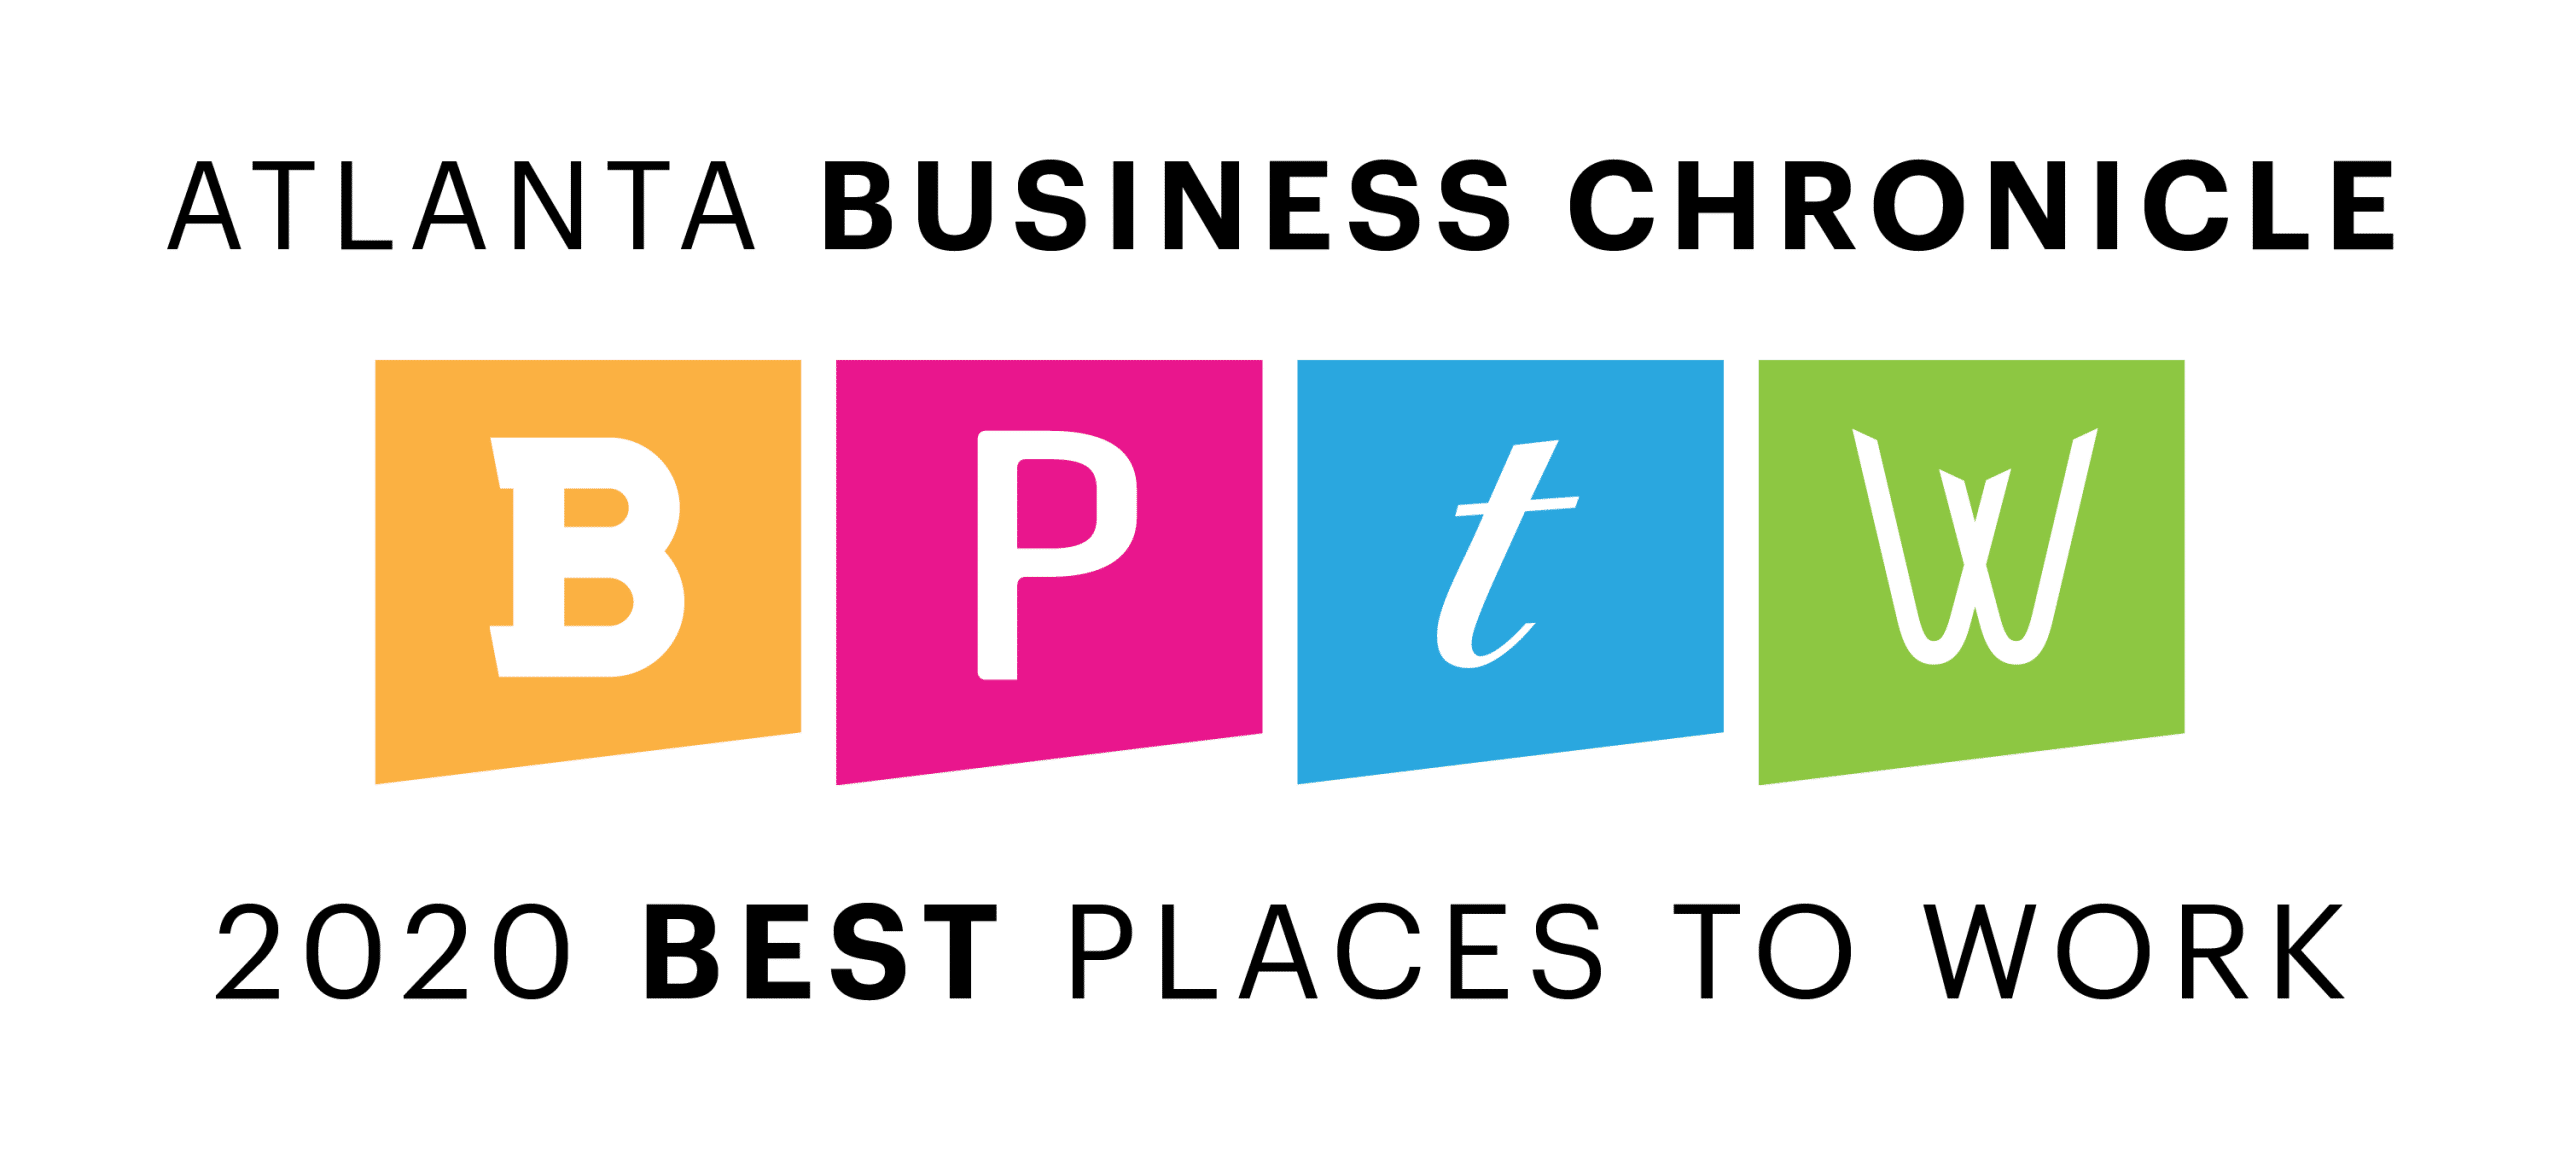 Atlanta Best Places to Work